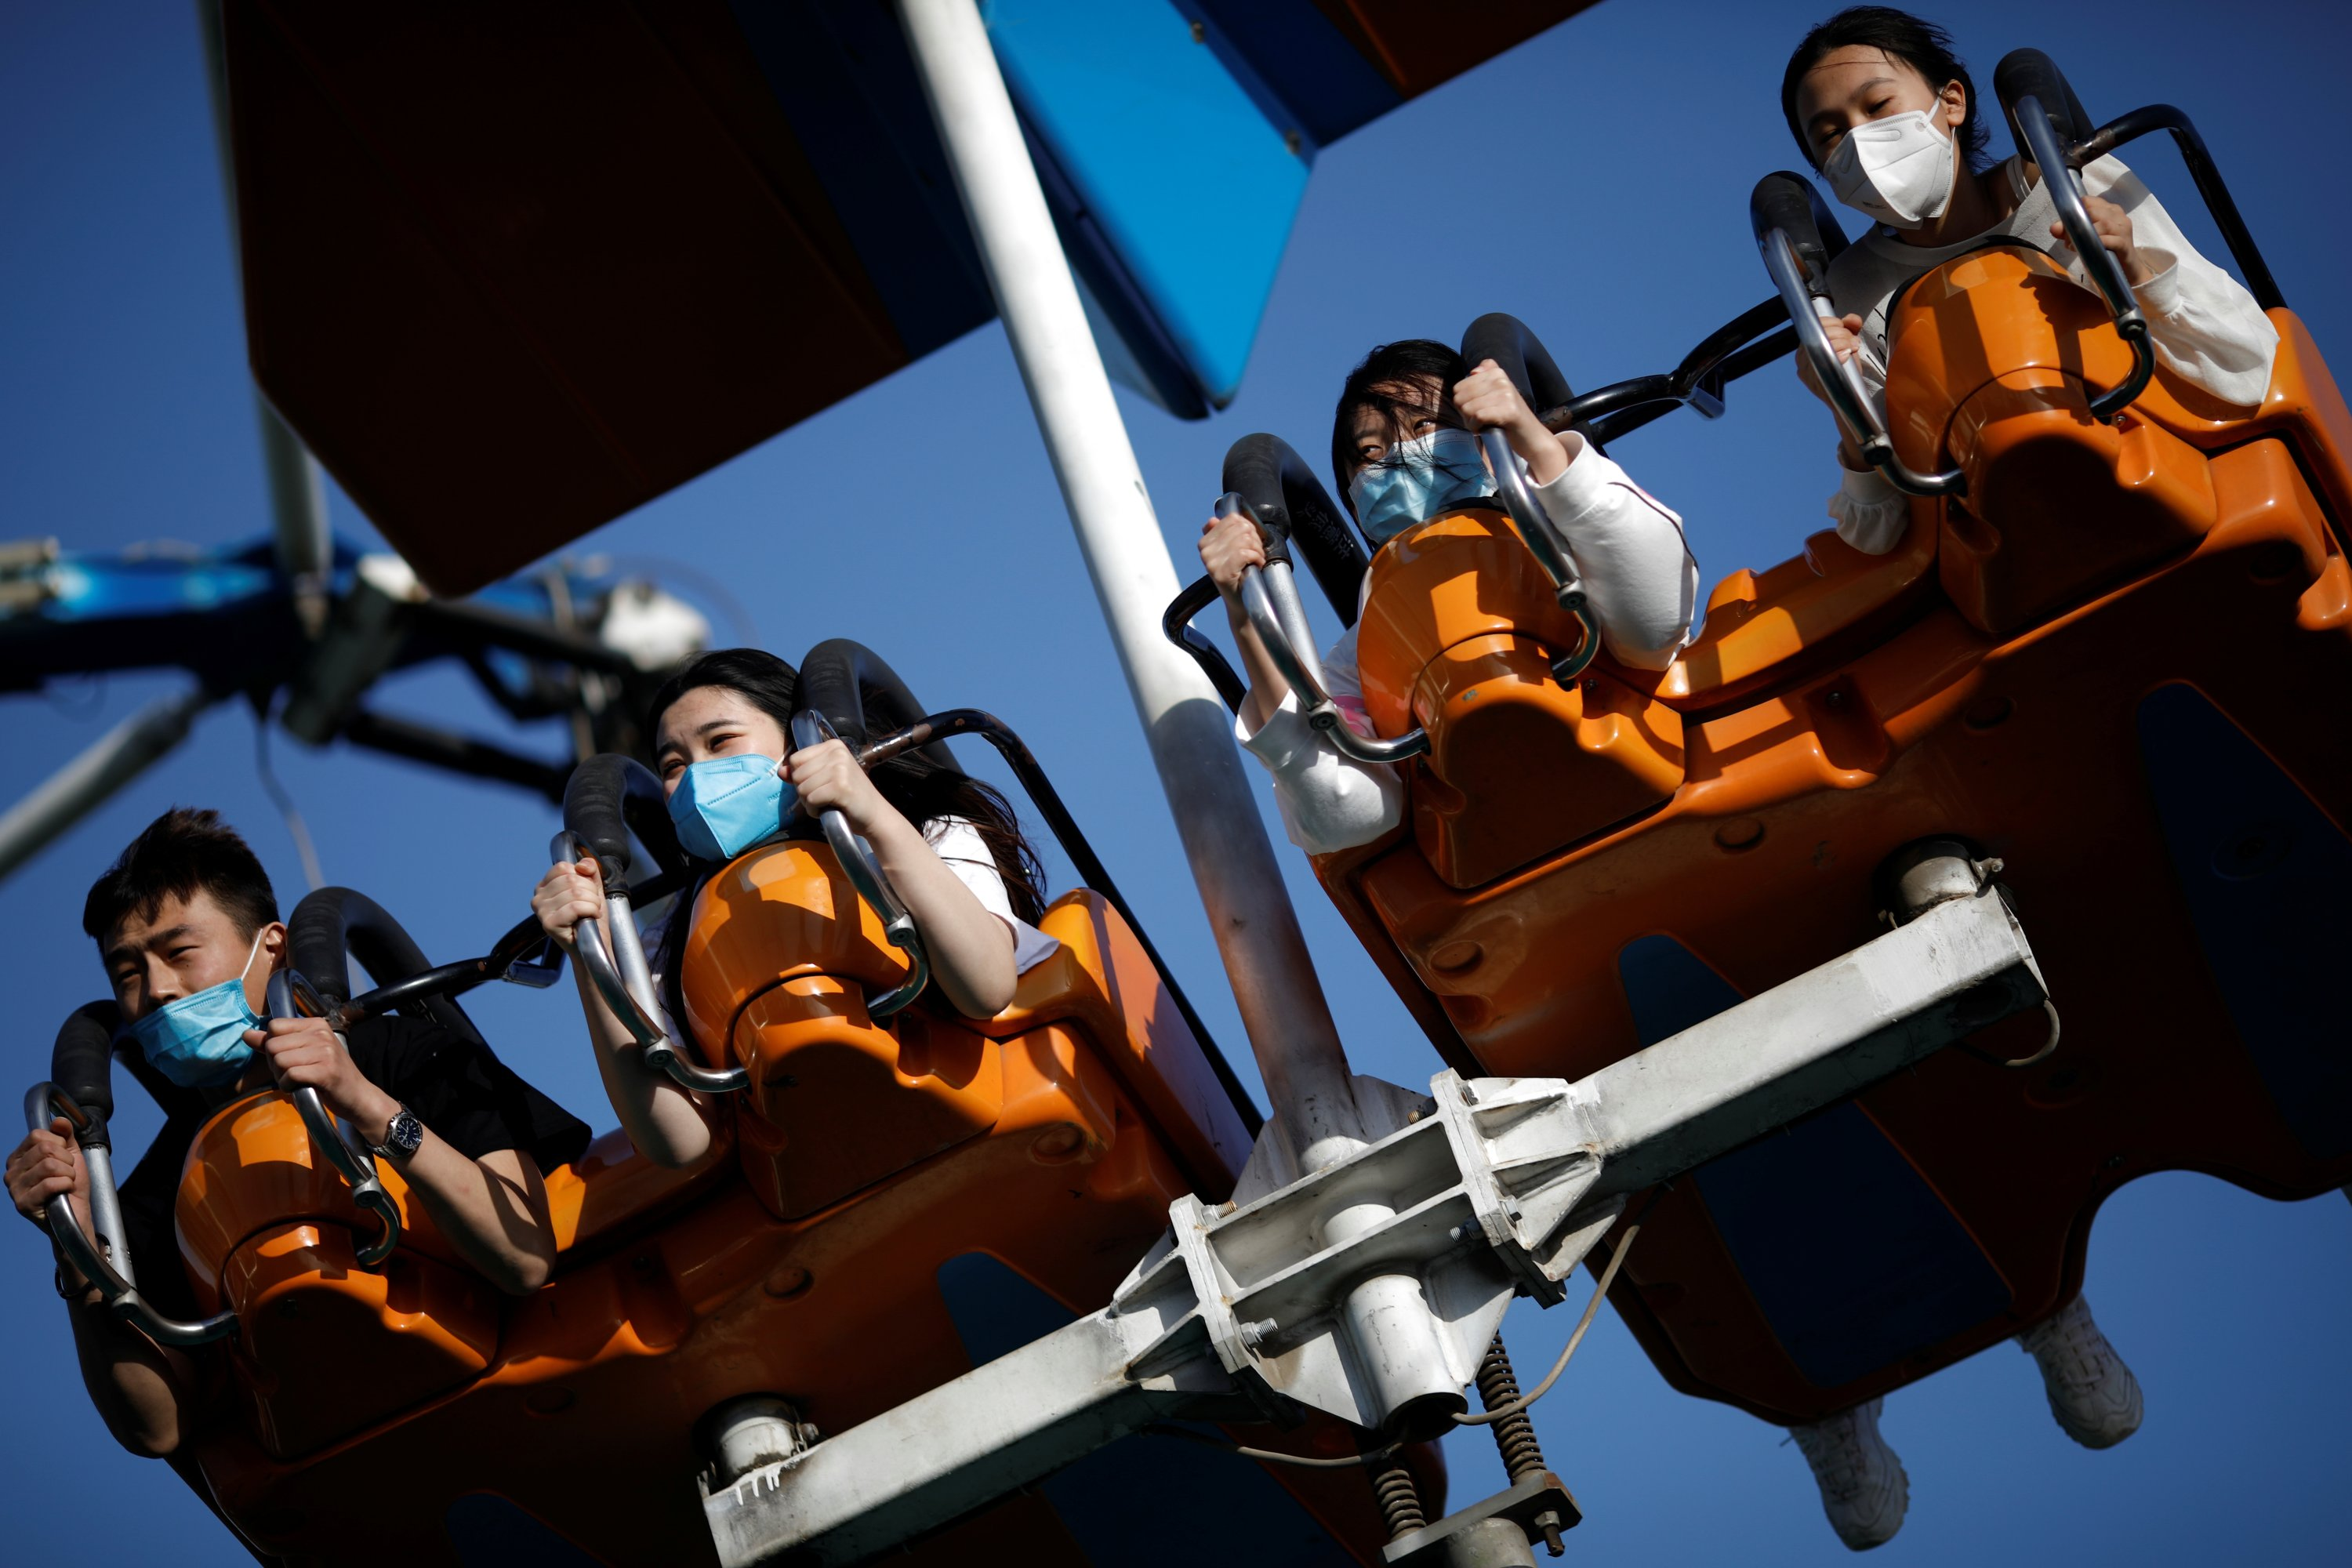 People wearing face masks enjoy an attraction at the Happy Valley amusement park in Beijing, China May 10, 2020. (REUTERS Photo)